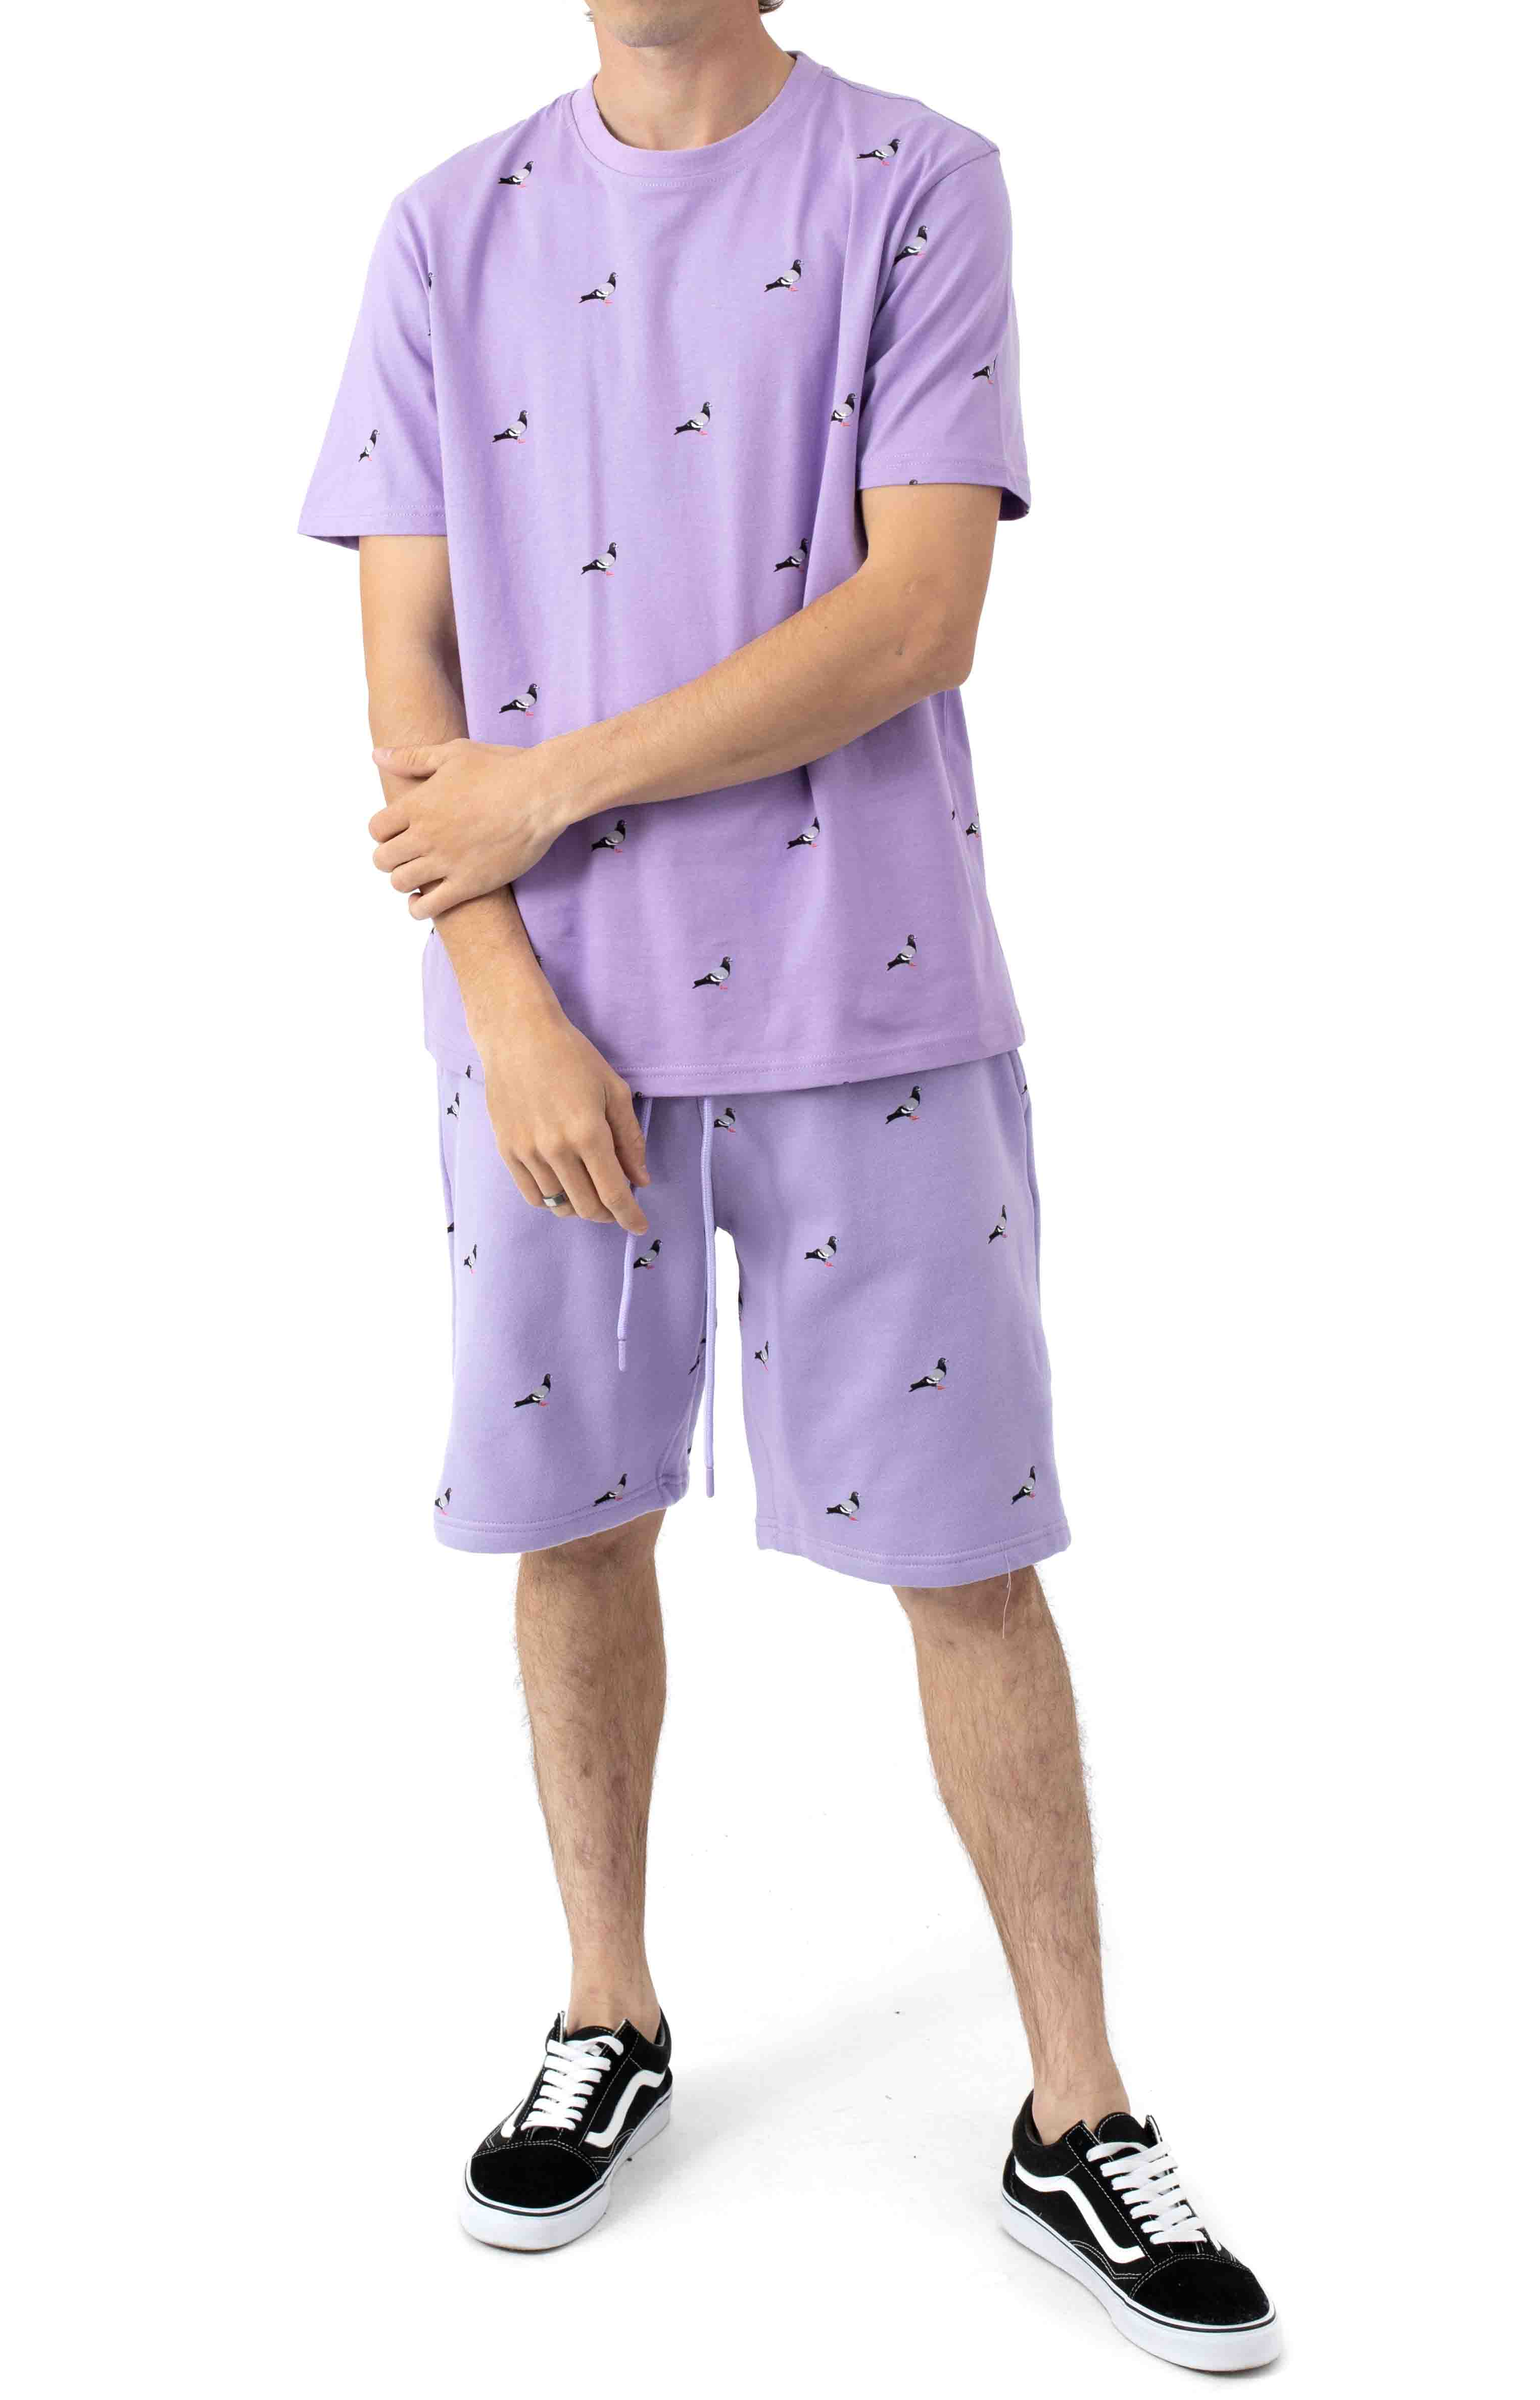 All Over Pigeon T-Shirt - Lilac 4